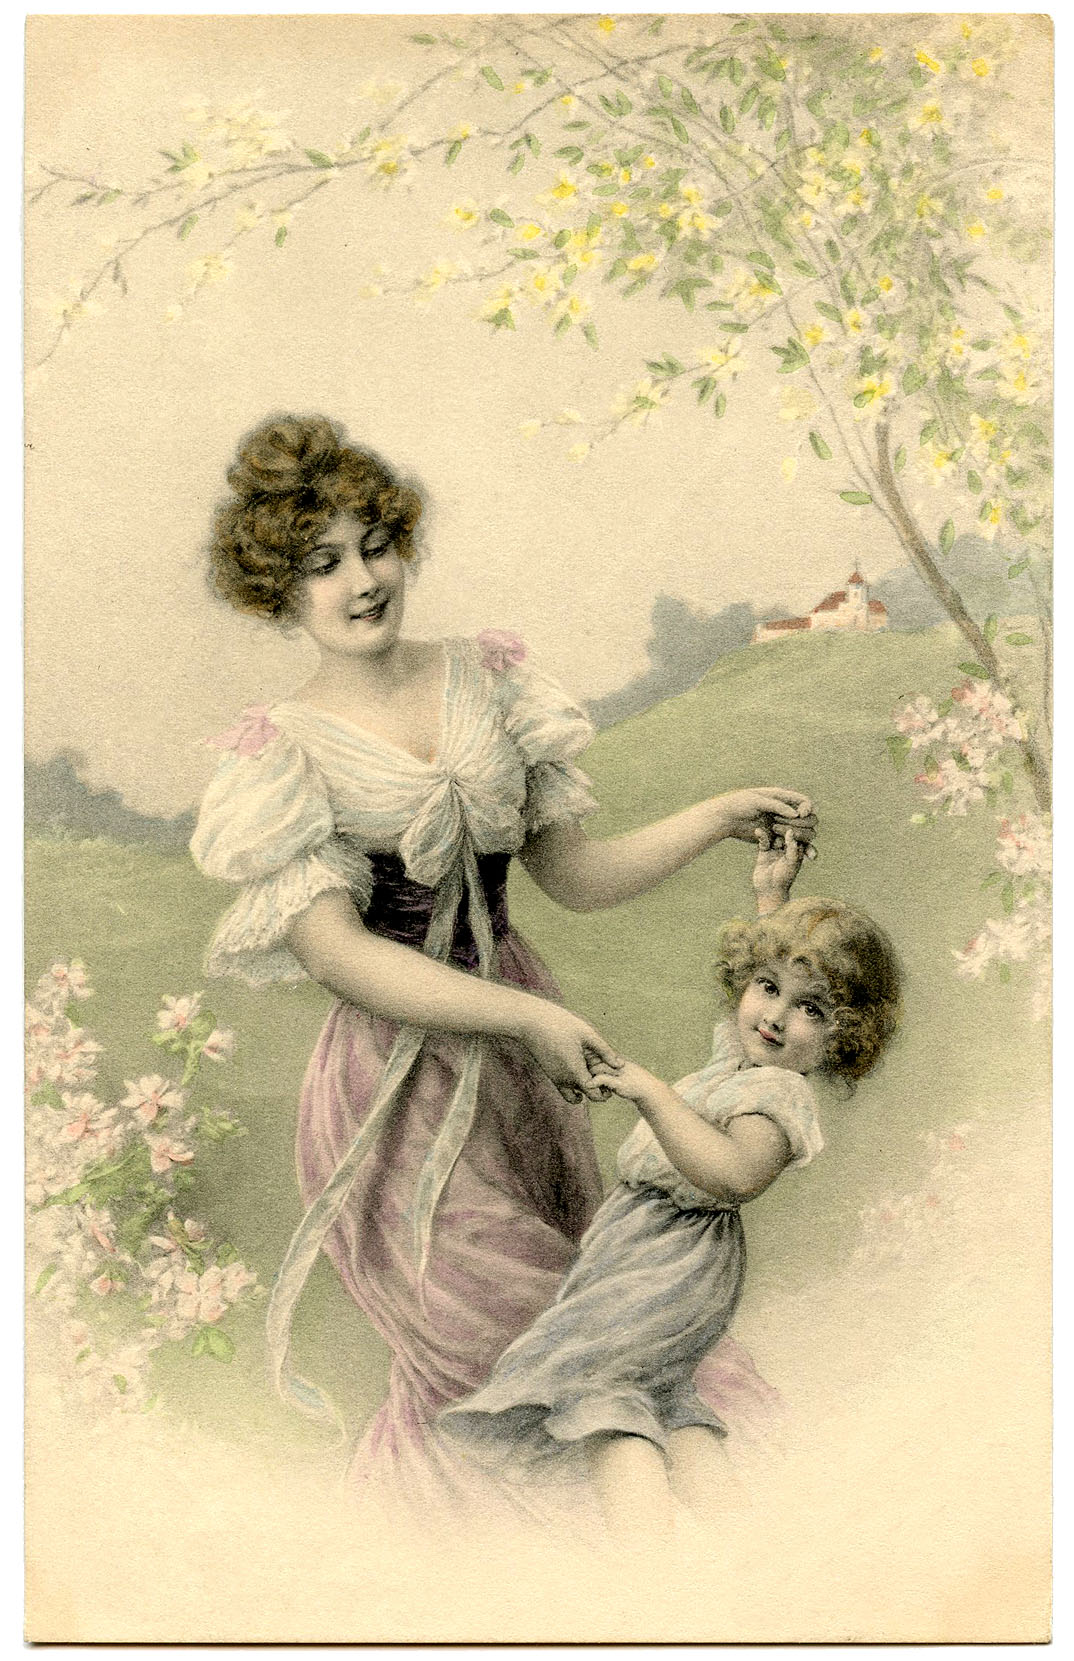 Vintage Mother and Child Image